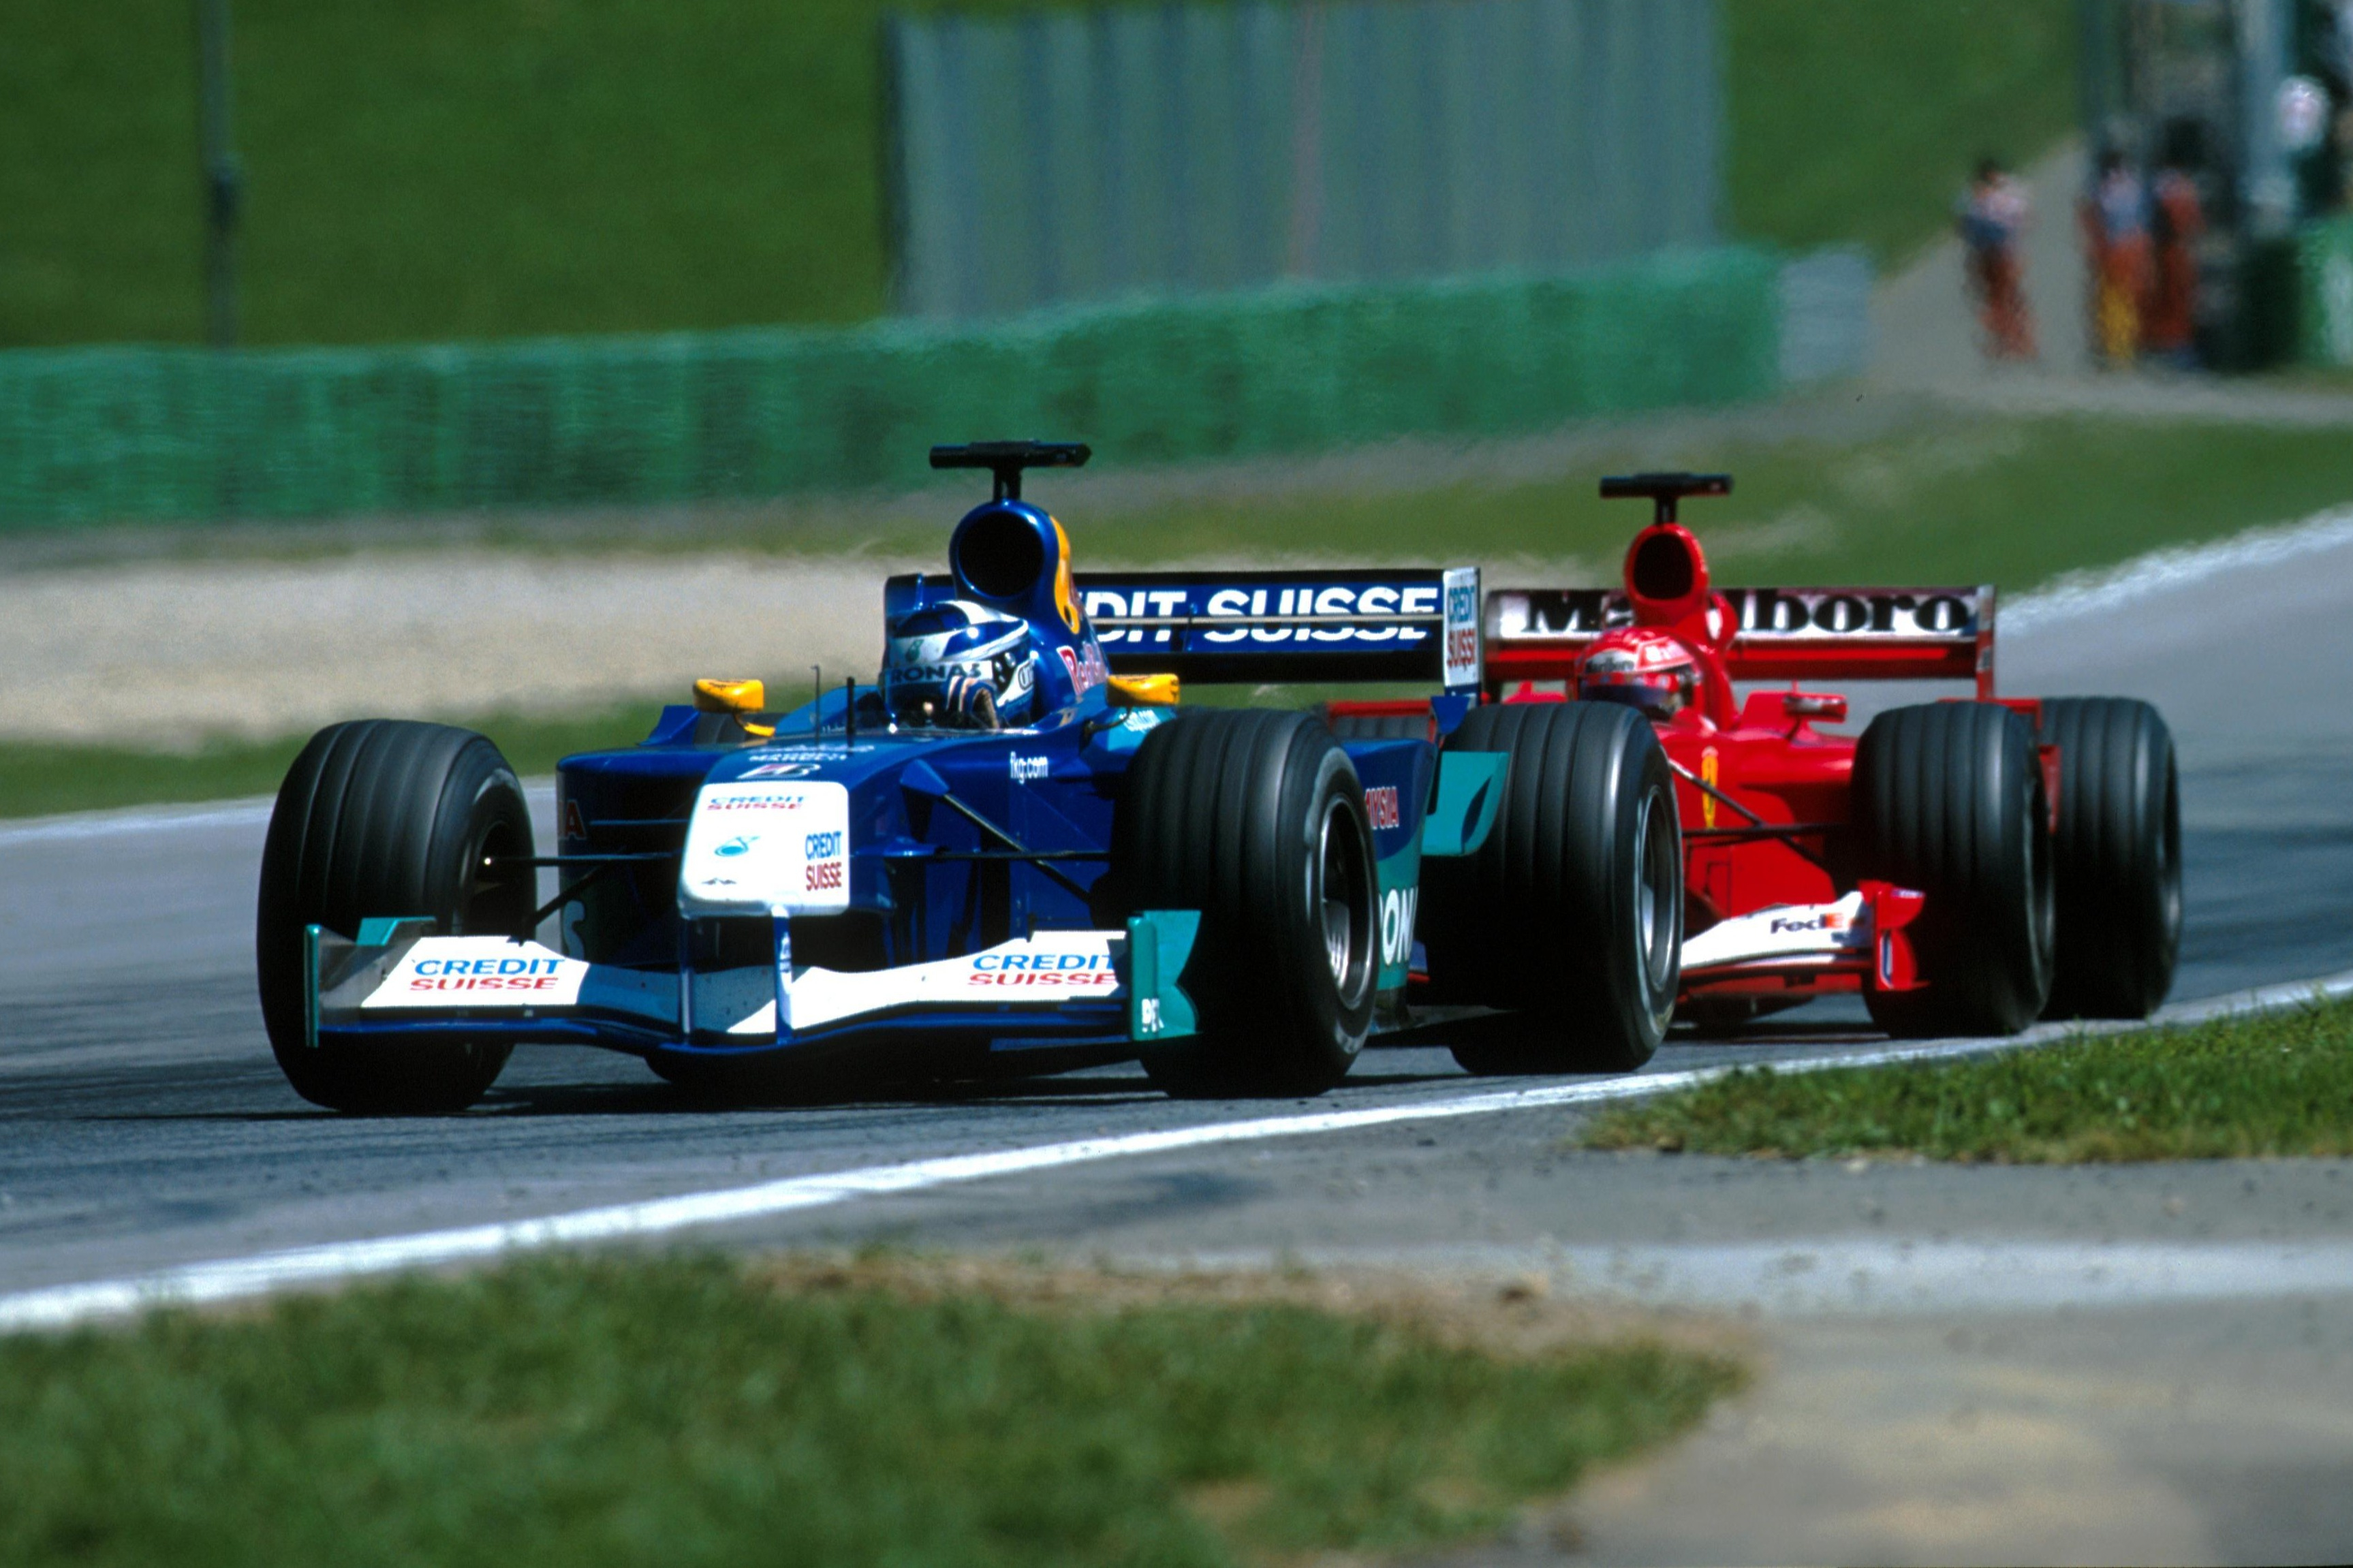 Raikkonen was heavily linked with a move to Ferrari, although it seemed he would have to bide his time a while longer at Sauber